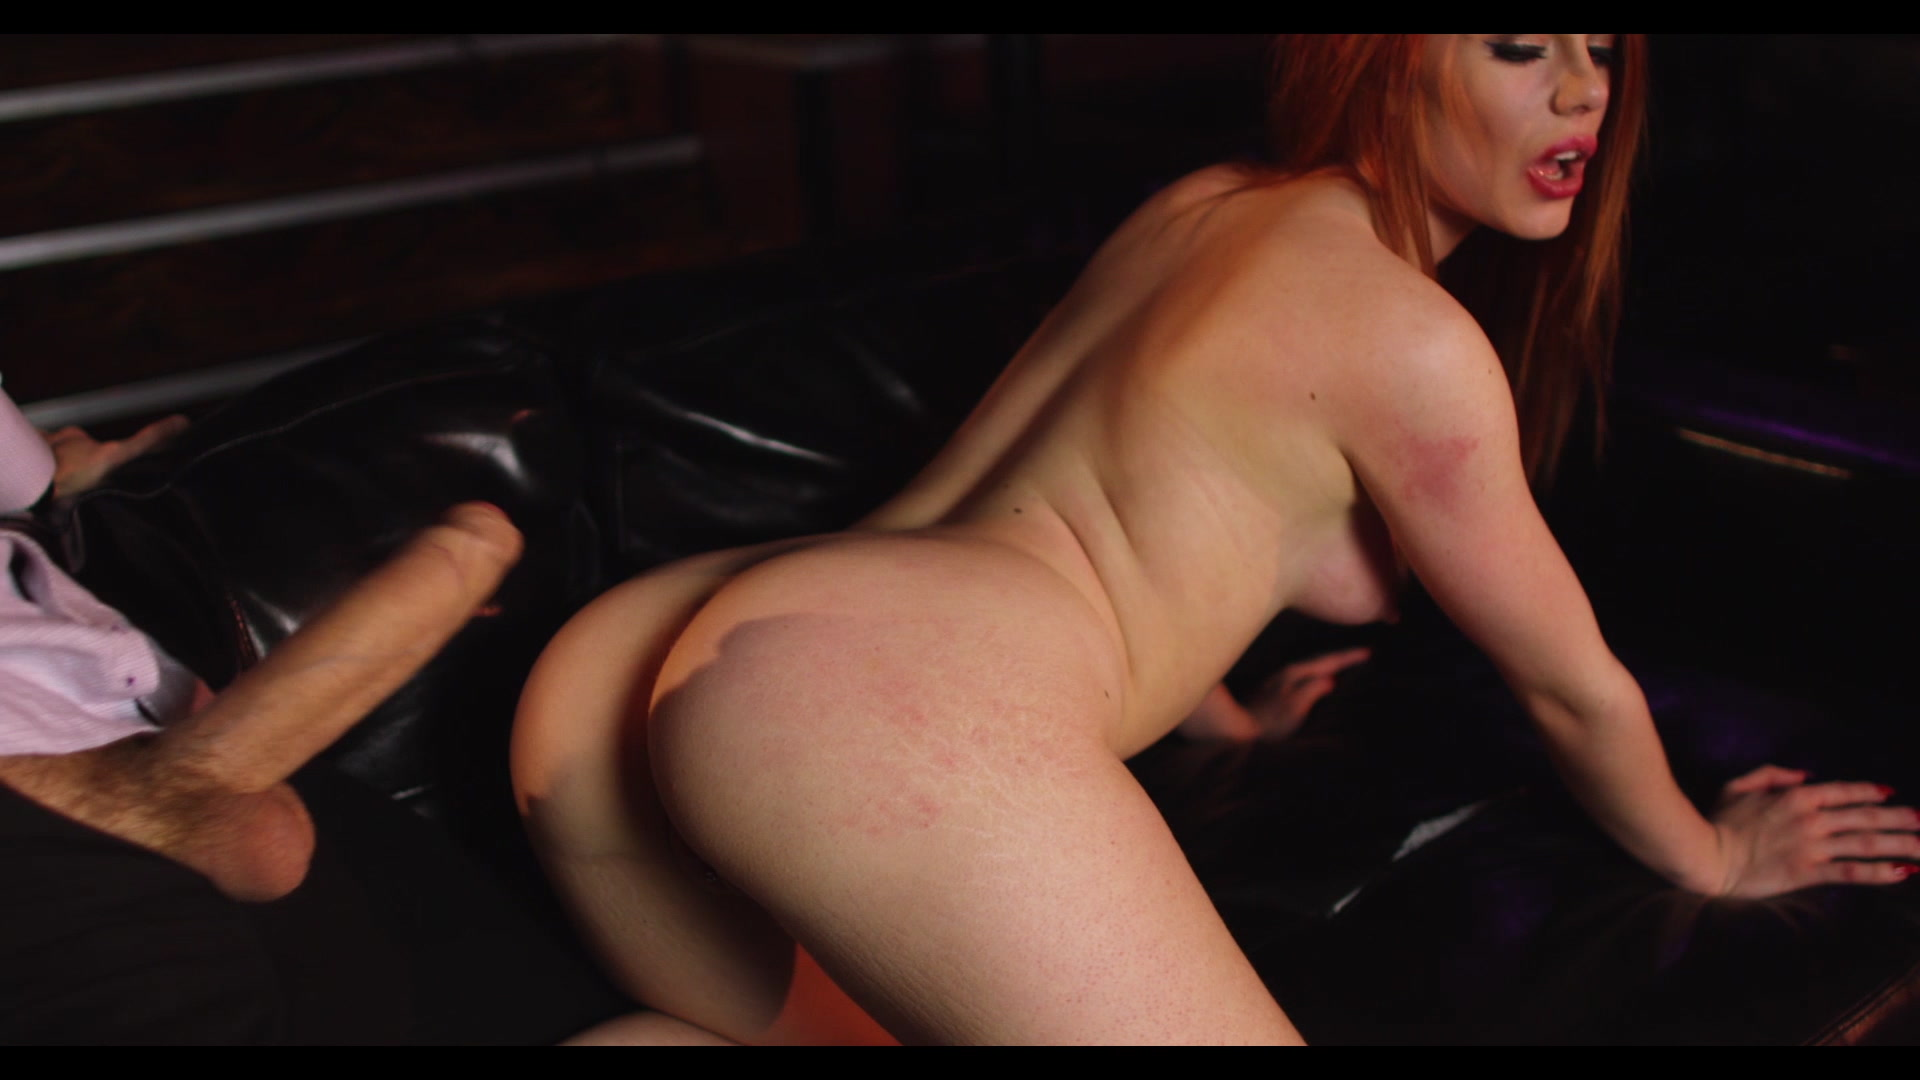 Scene with Ella Hughes - image 12 out of 20